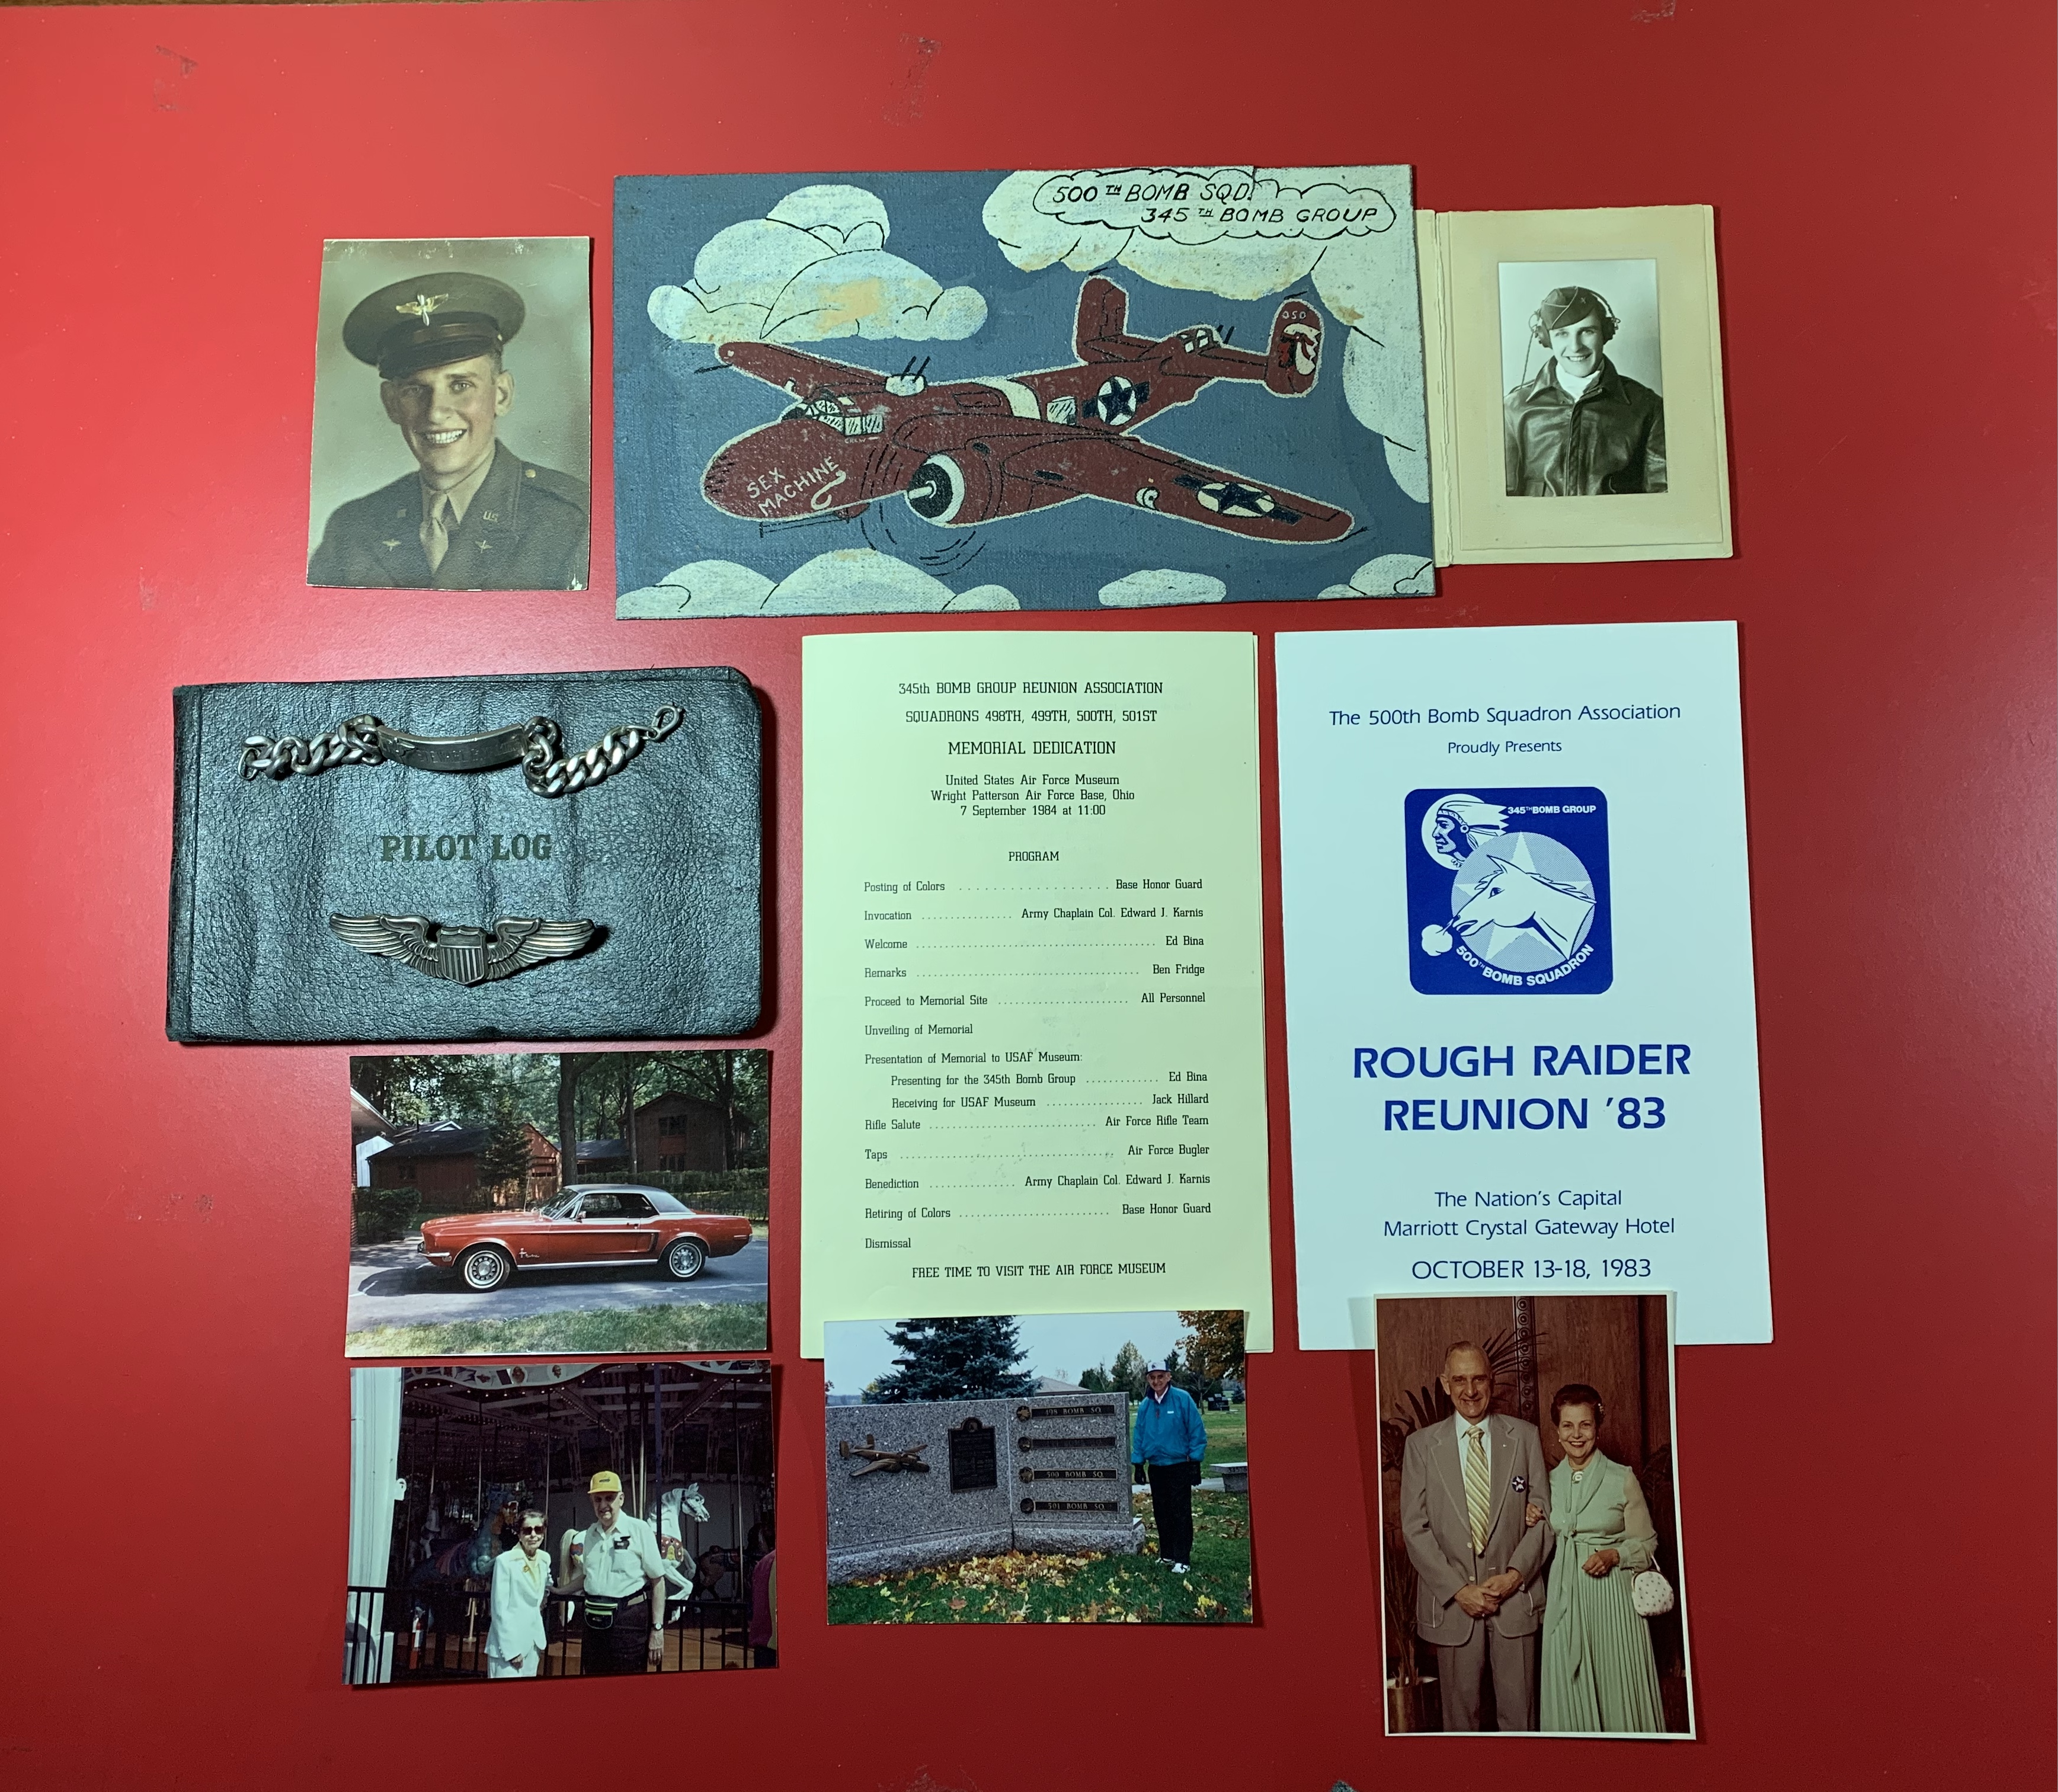 Top, center: Hand-drawn depiction of a B-25 Bomber. Top, left and right: Photos of Stewart during flight training. Middle, left: Stewart's wings, identification bracelet, Pilot Log and a photo of his Ford Mustang. Bottom, left: Stewart and Bernice attending the 1992 AmeriFlora event in Columbus. Bottom, center: Stewart attending his group's Memorial Dedication at Wright Patterson Air Force Base September 7, 1984. Bottom, right: Stewart and Bernice attending a reunion in Washington, D.C. in 1983.